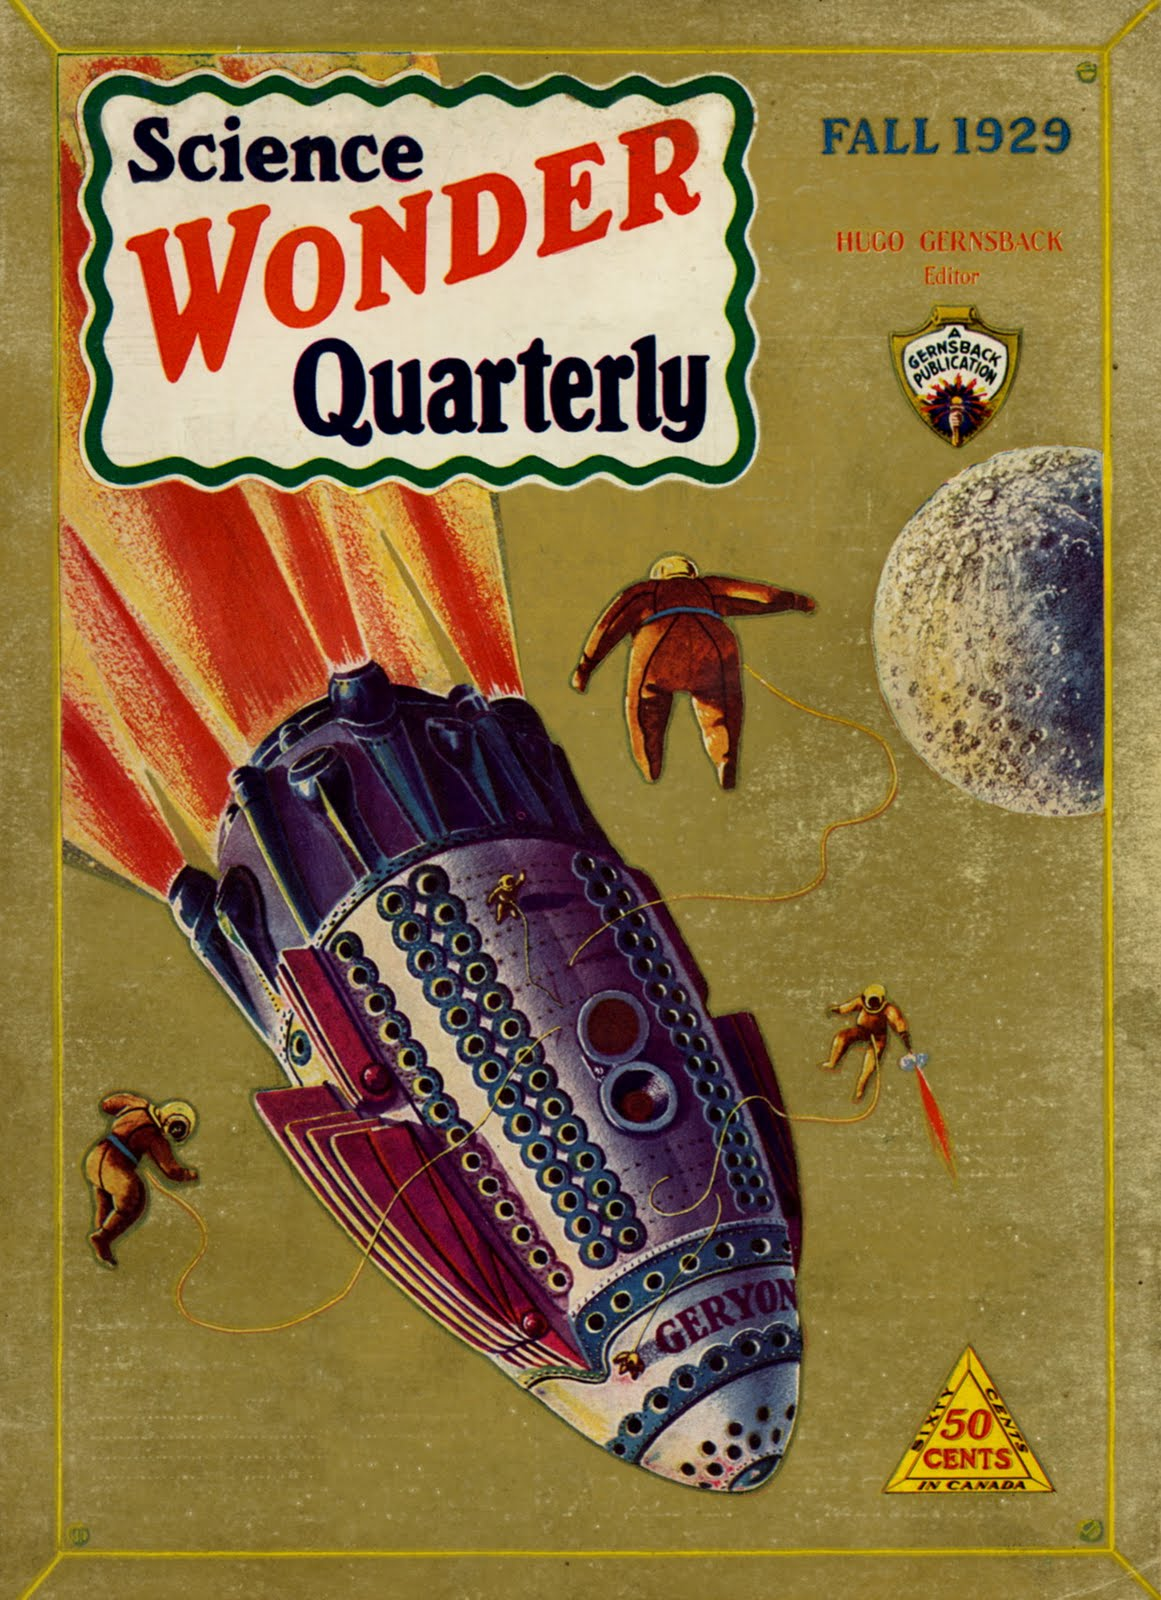 File:Science Wonder Quarterly Fall 1929.jpg